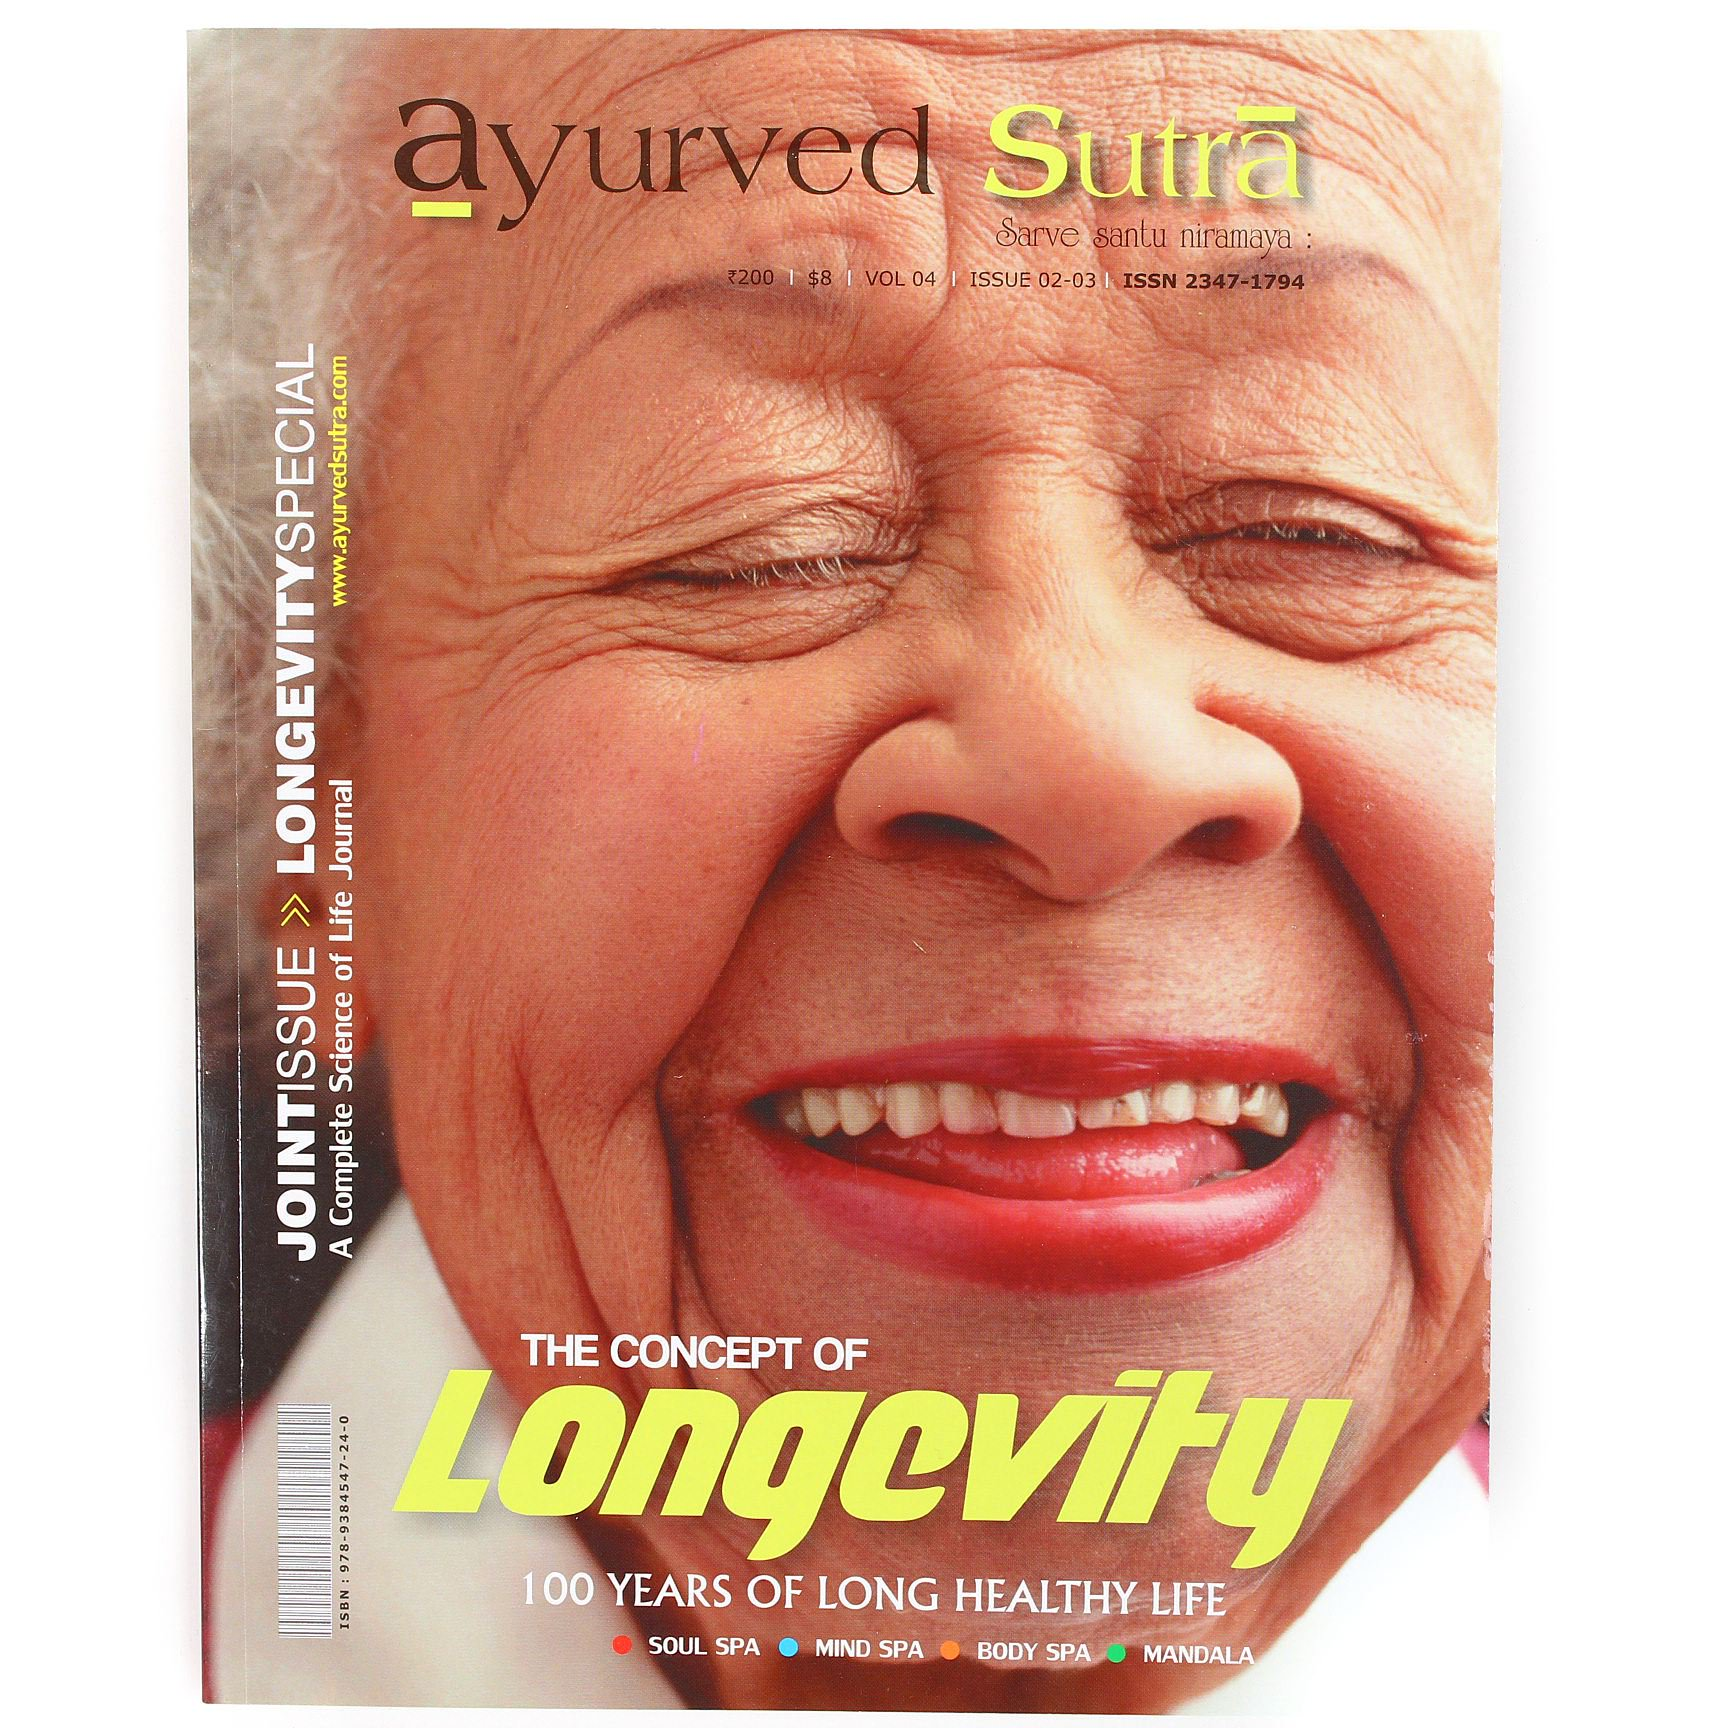 Ayurved Sutra / The Concept of Longev...